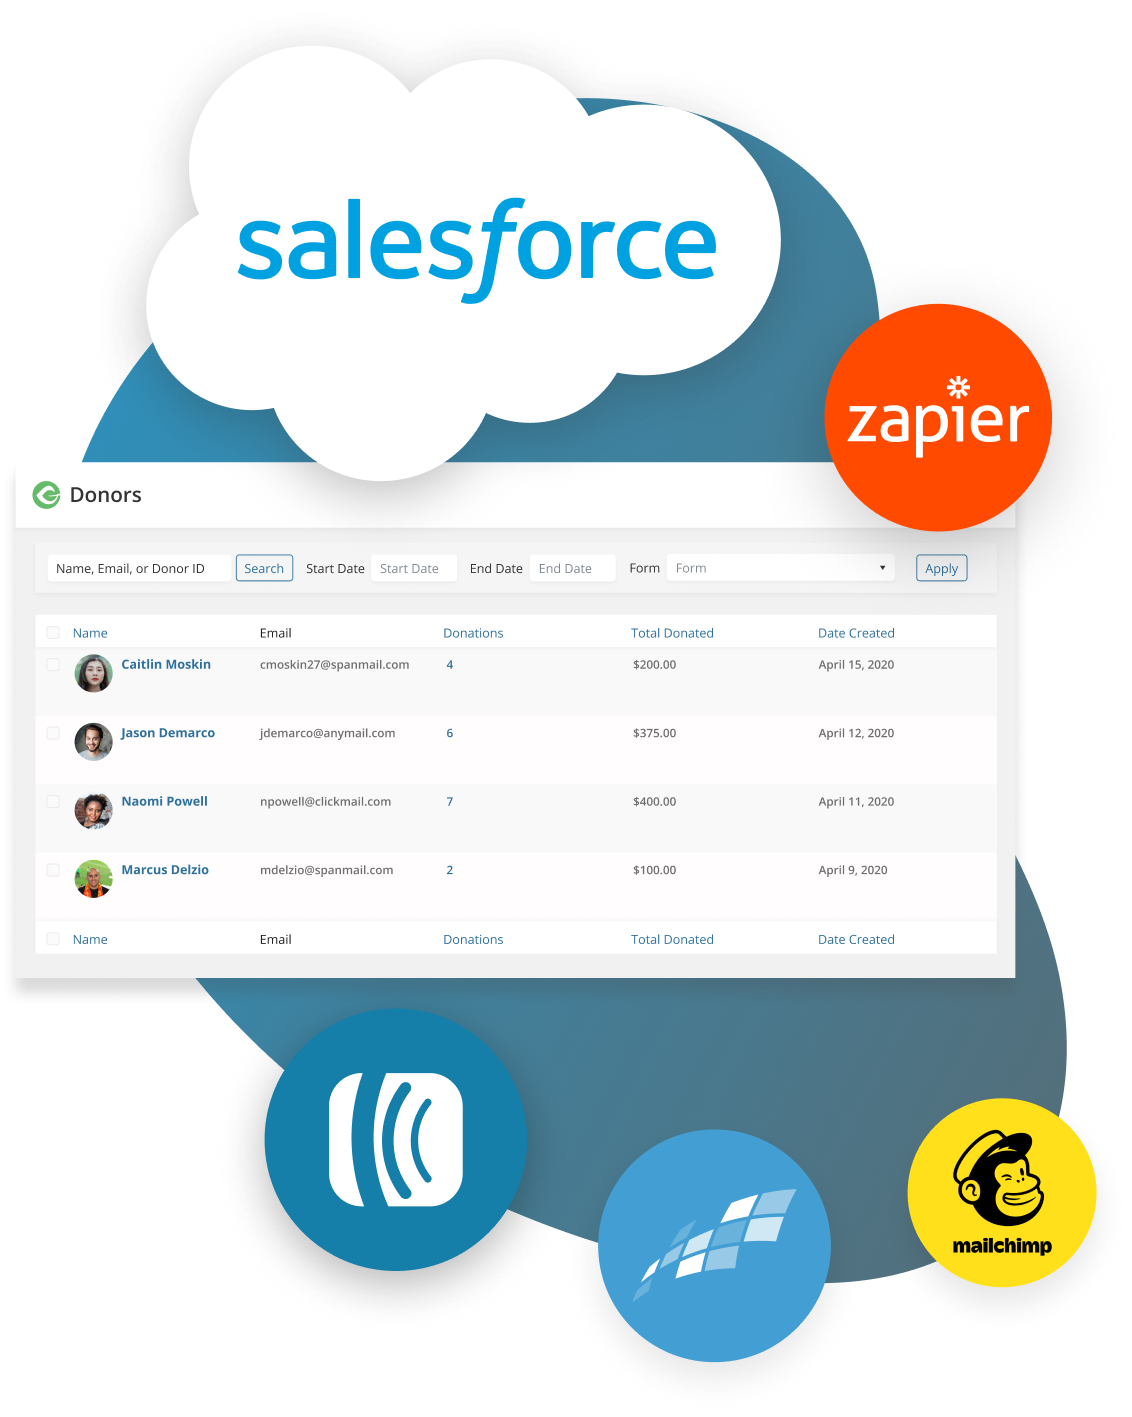 Integrate your donor database with Salesforce through Zapier or directly with our add-ons for MailChimp, Constant Contact, aWeber and more.